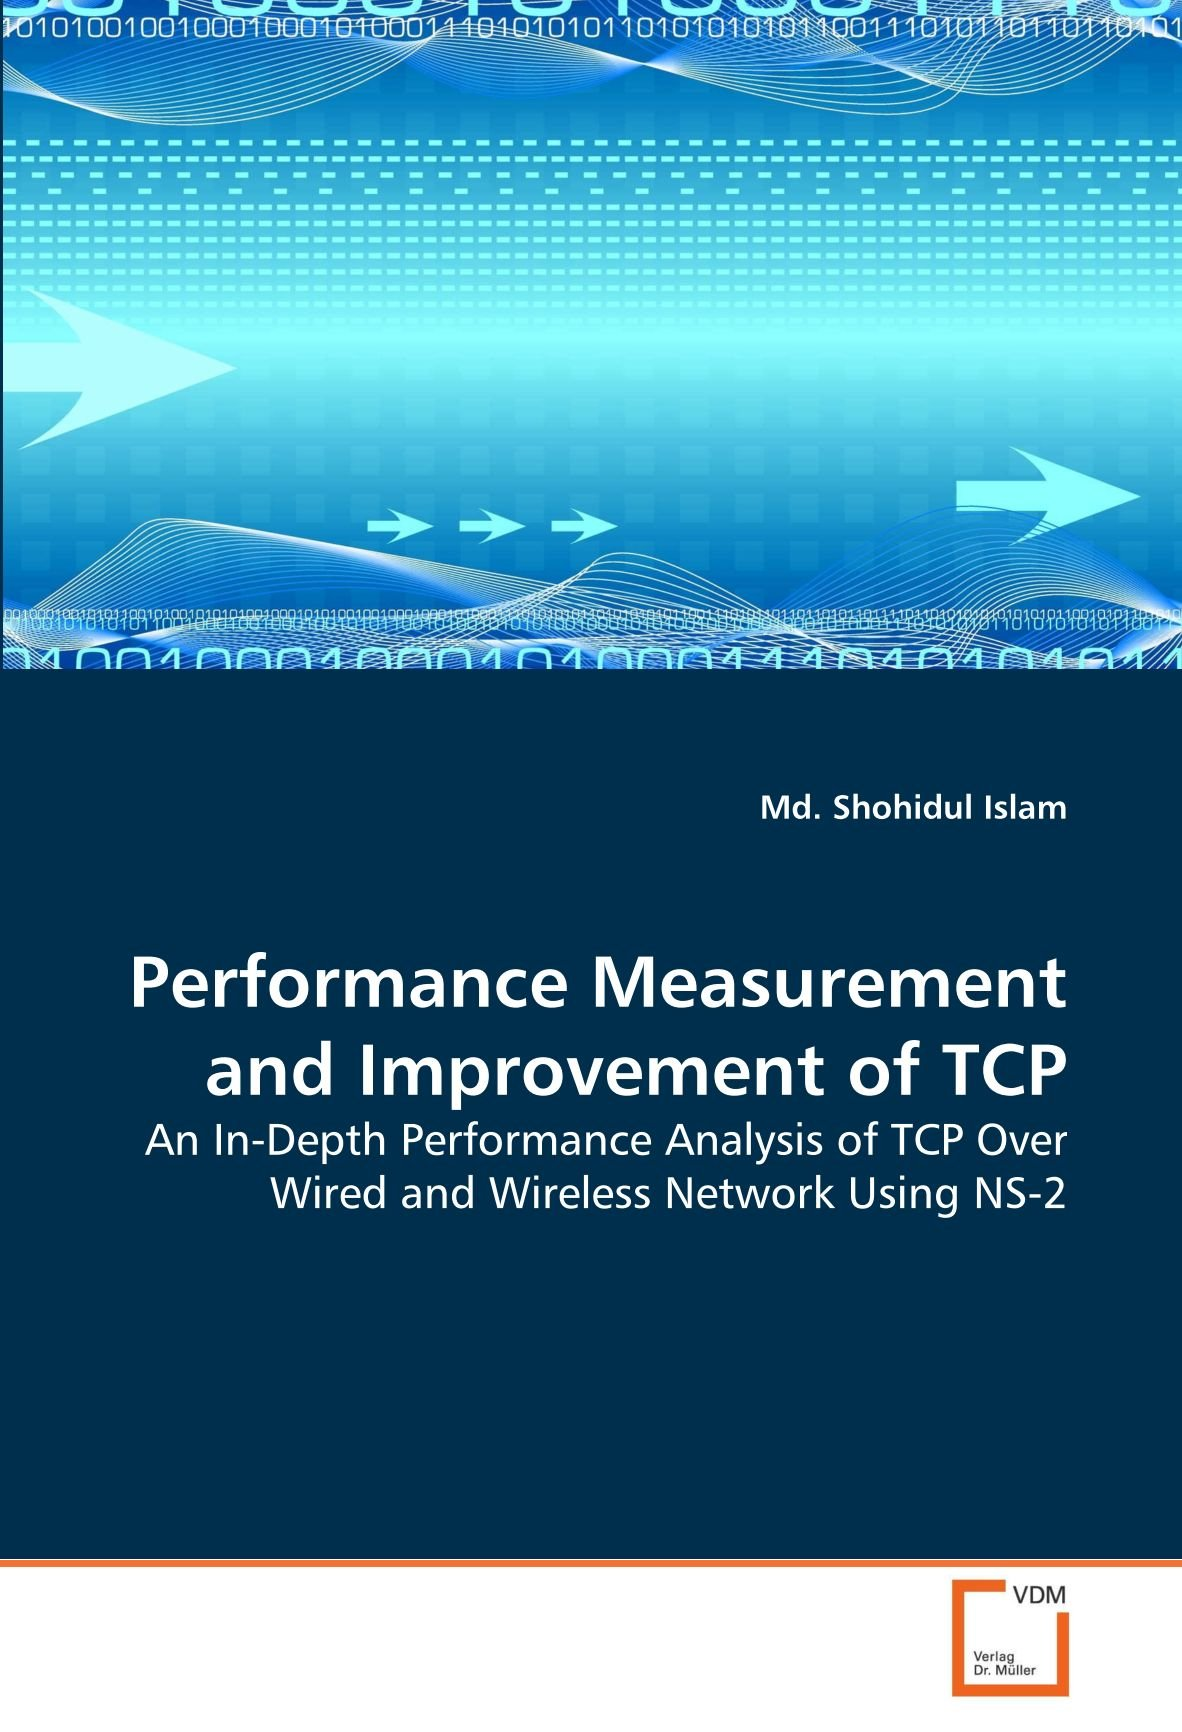 Performance Measurement and Improvement of TCP: An In-Depth ...